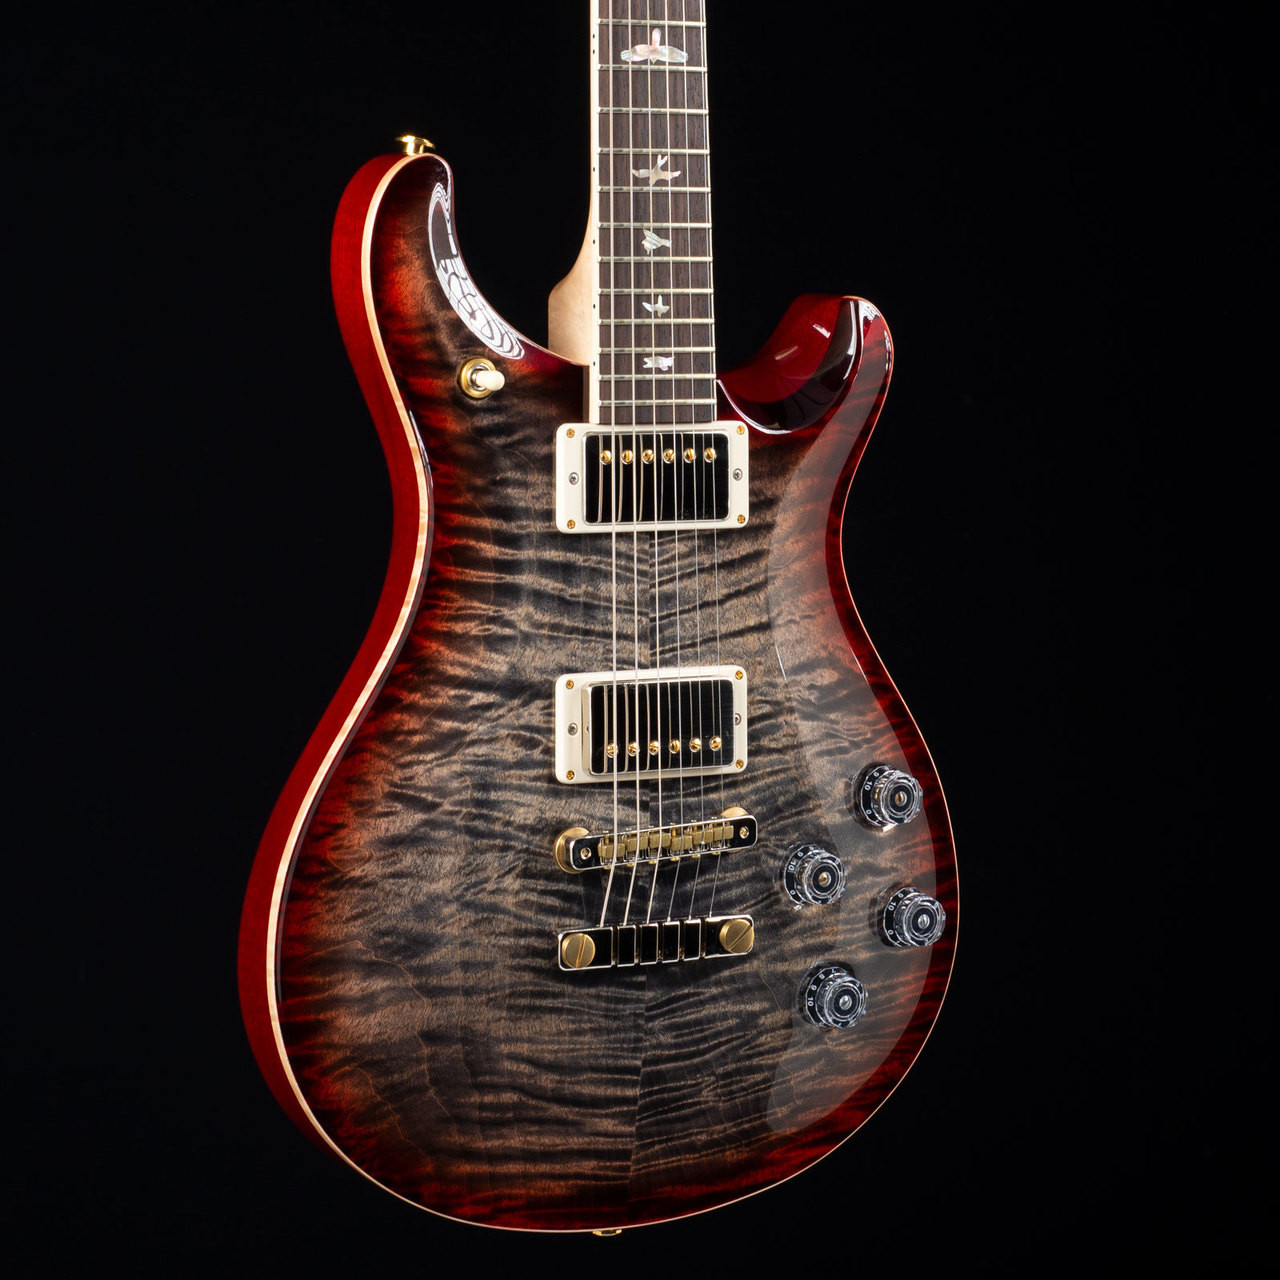 PRS McCarty 594 10 Top Flame Maple Neck Charcoal Cherry Burst 4793